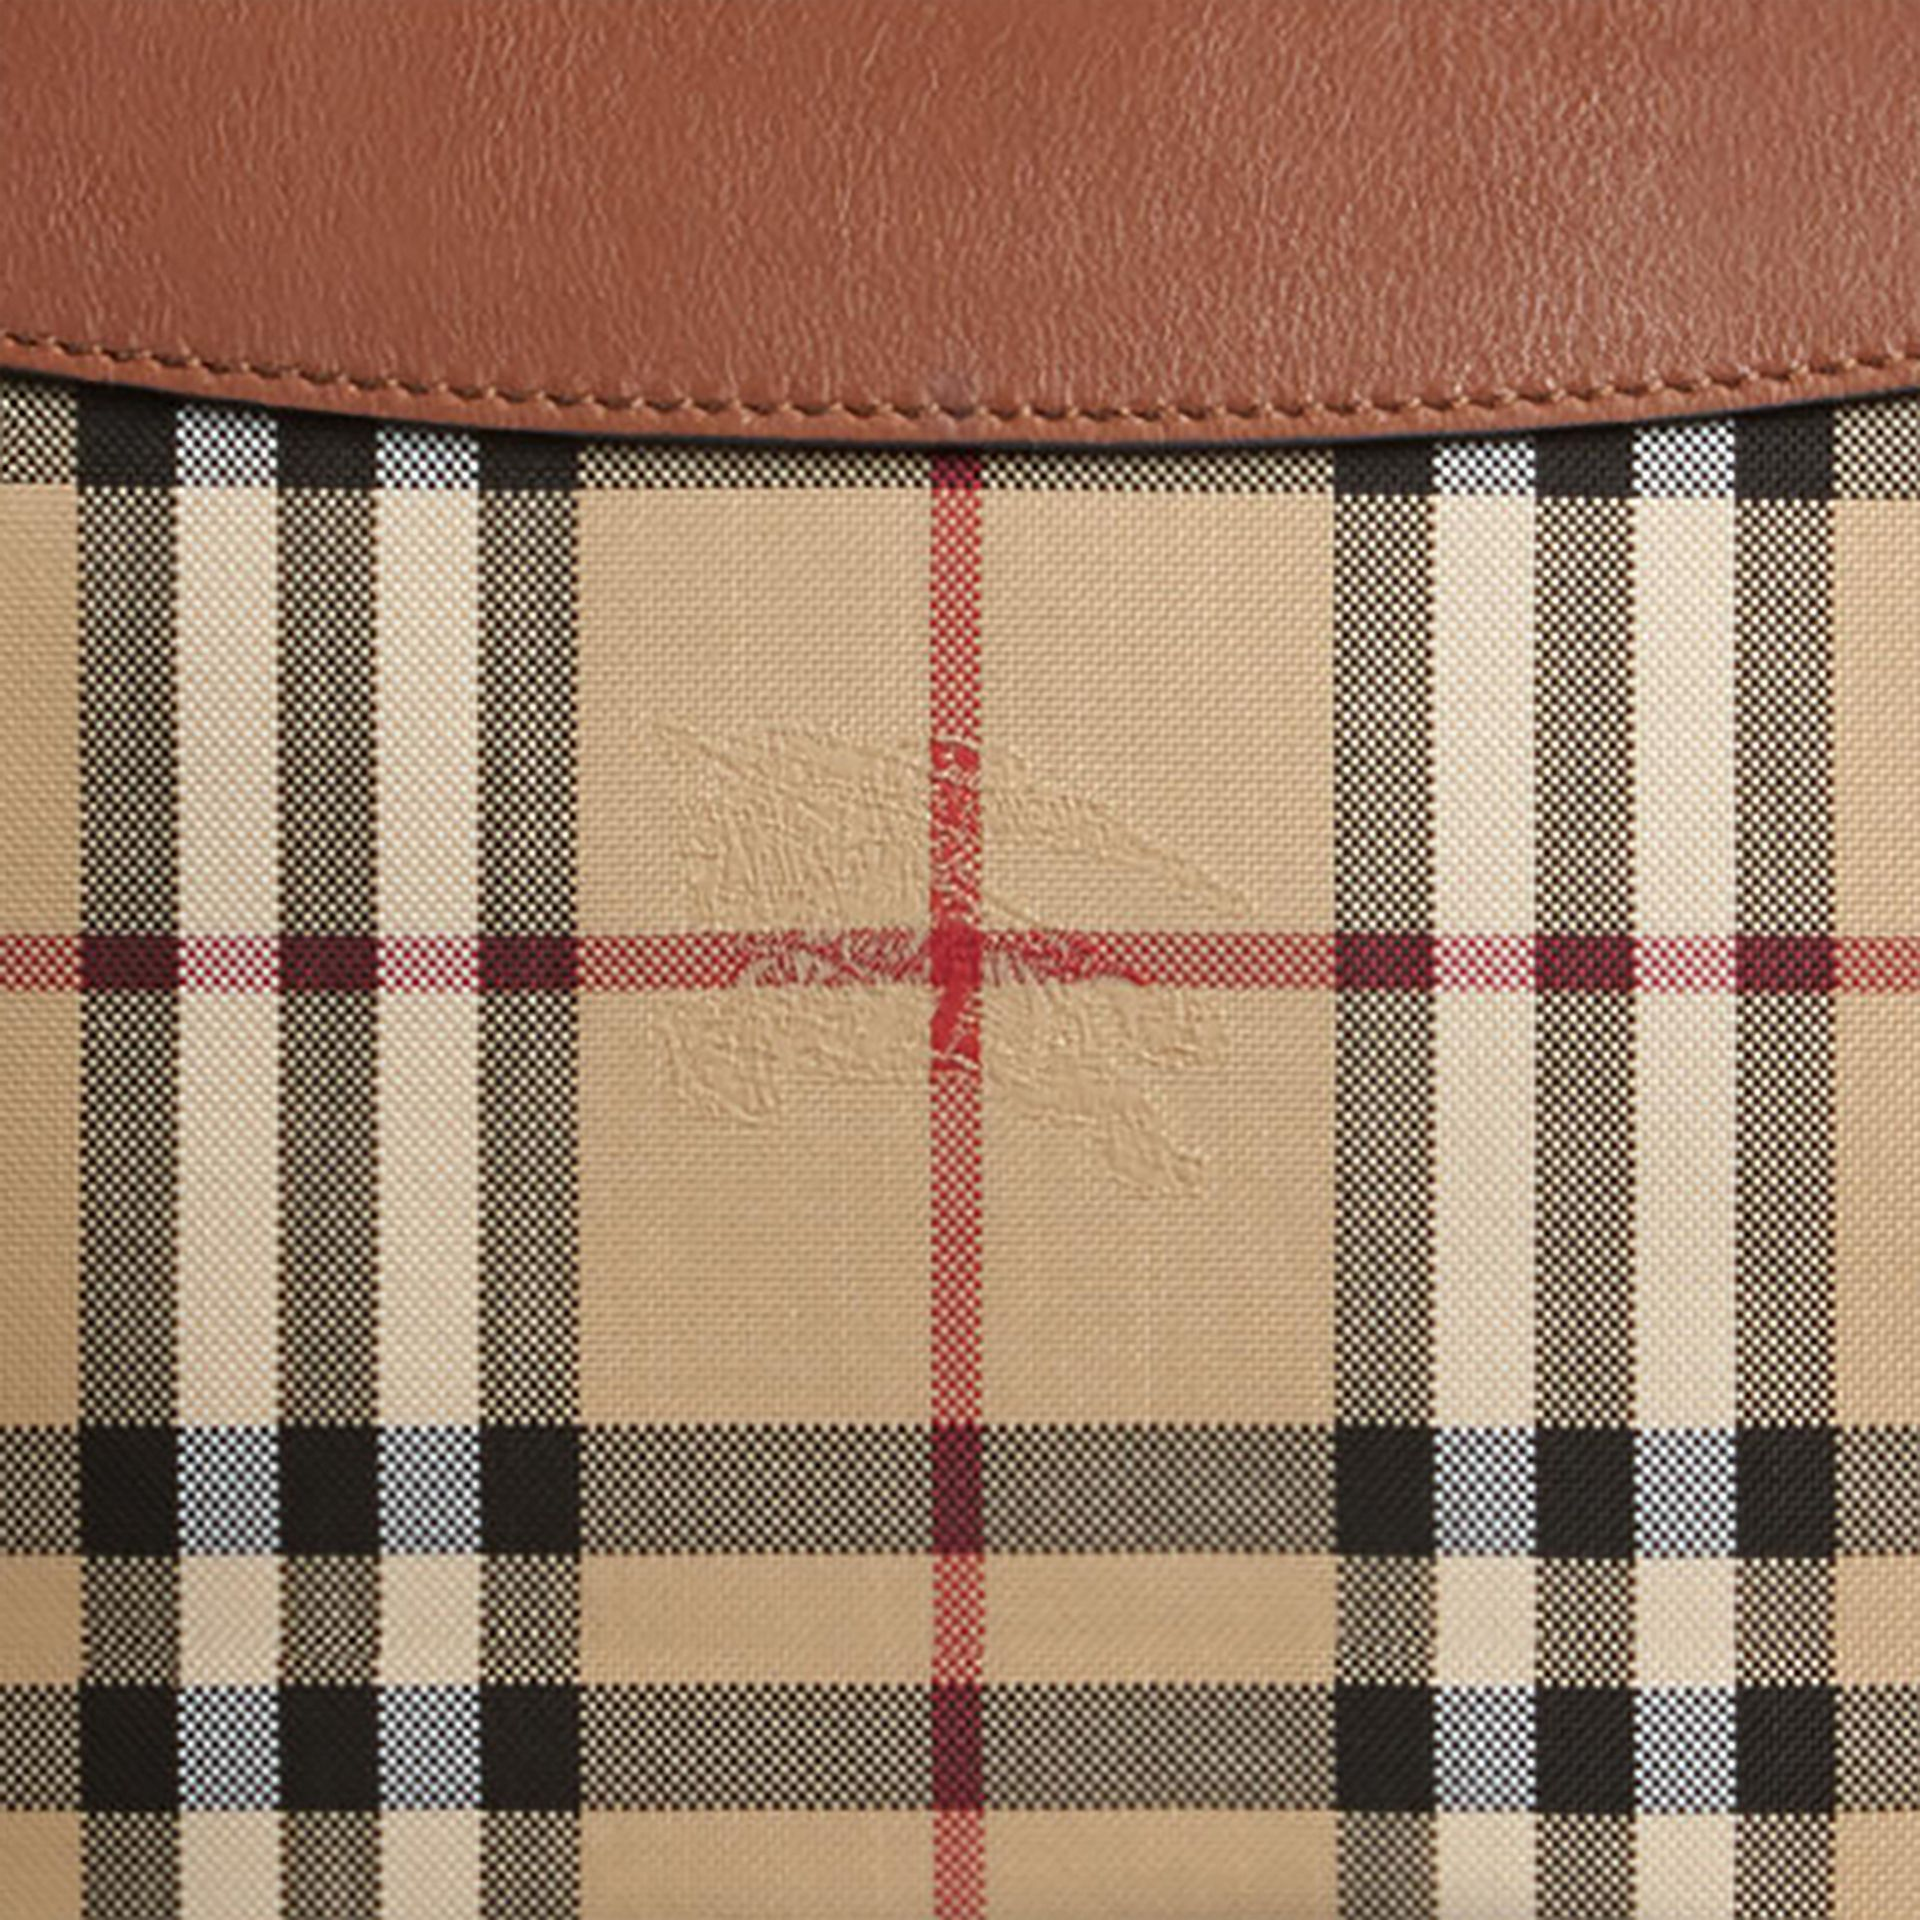 Horseferry Check and Leather Clutch Bag in Tan - Women | Burberry - gallery image 2